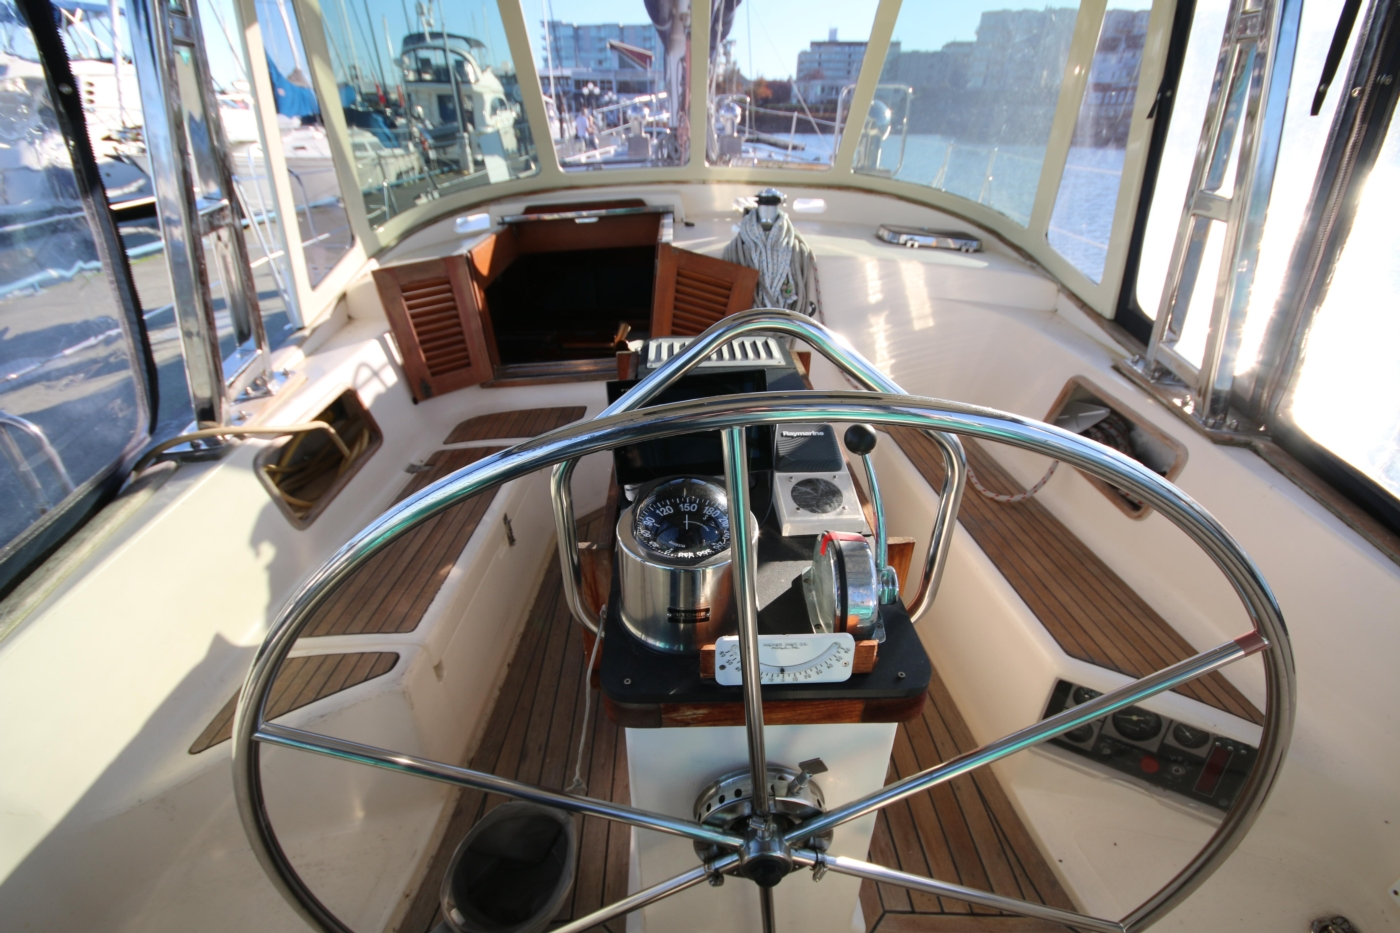 1996 Tanton 45 Offshore, Helm fwd view